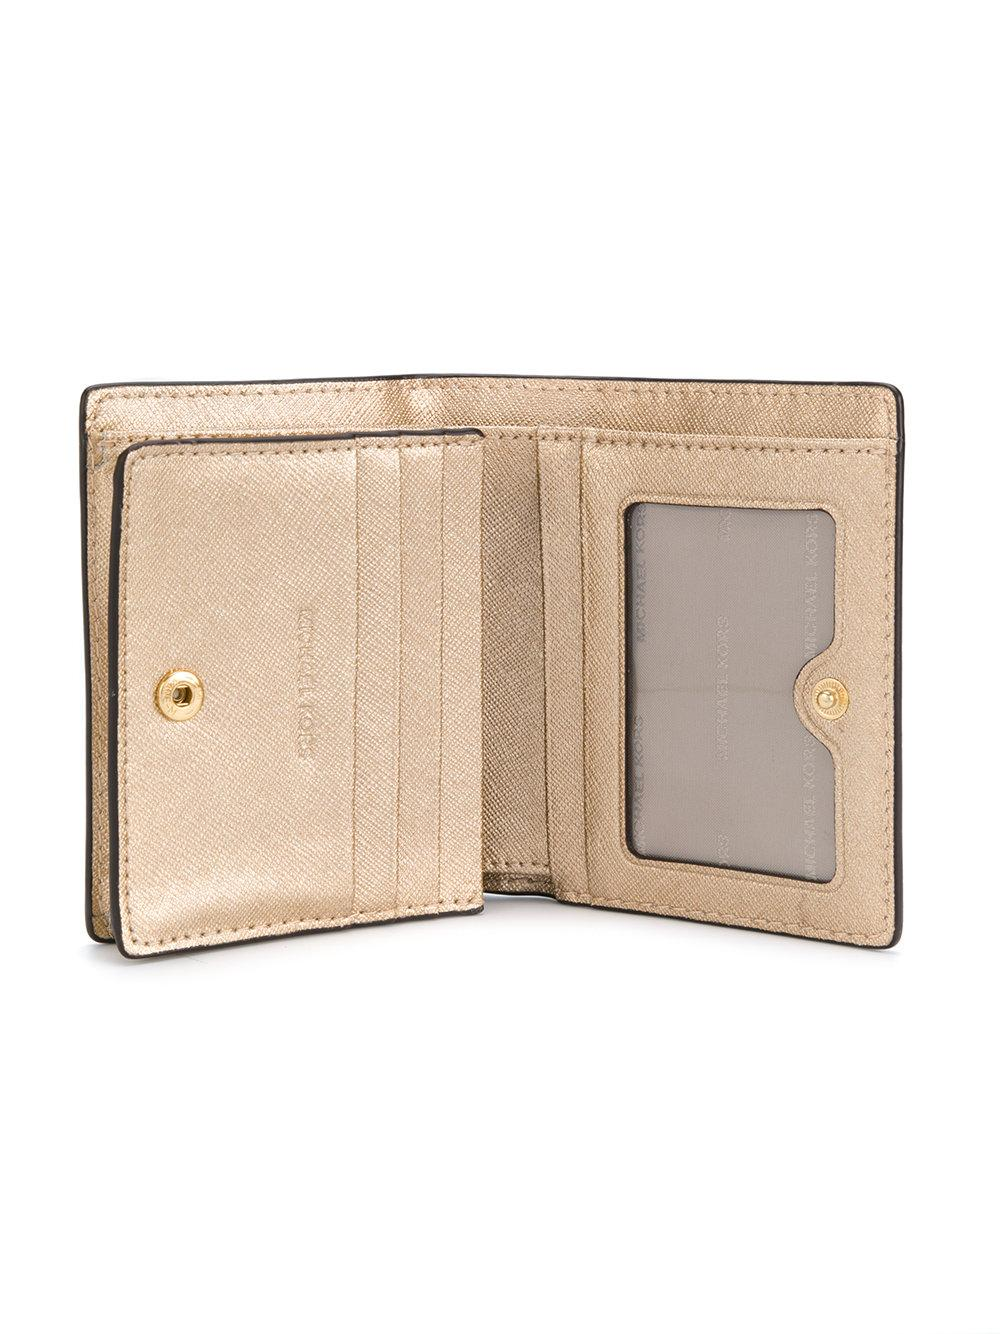 4173b3b8fee3 Small Logo And Leather Wallet Michael Kors | Stanford Center for ...